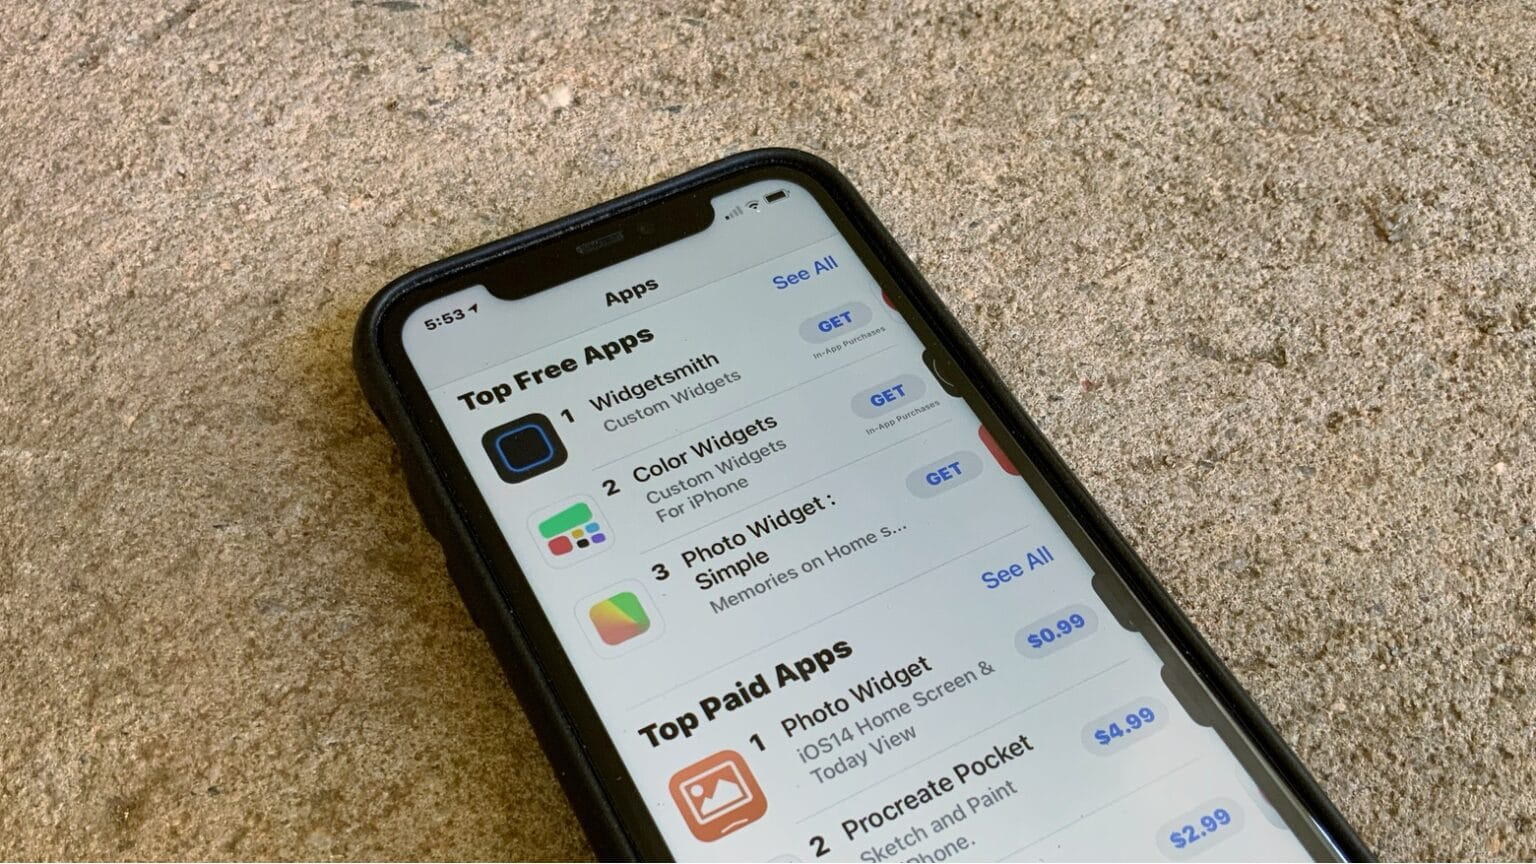 iOS 14 widgets apps shot to the top of the iPhone App Store charts.